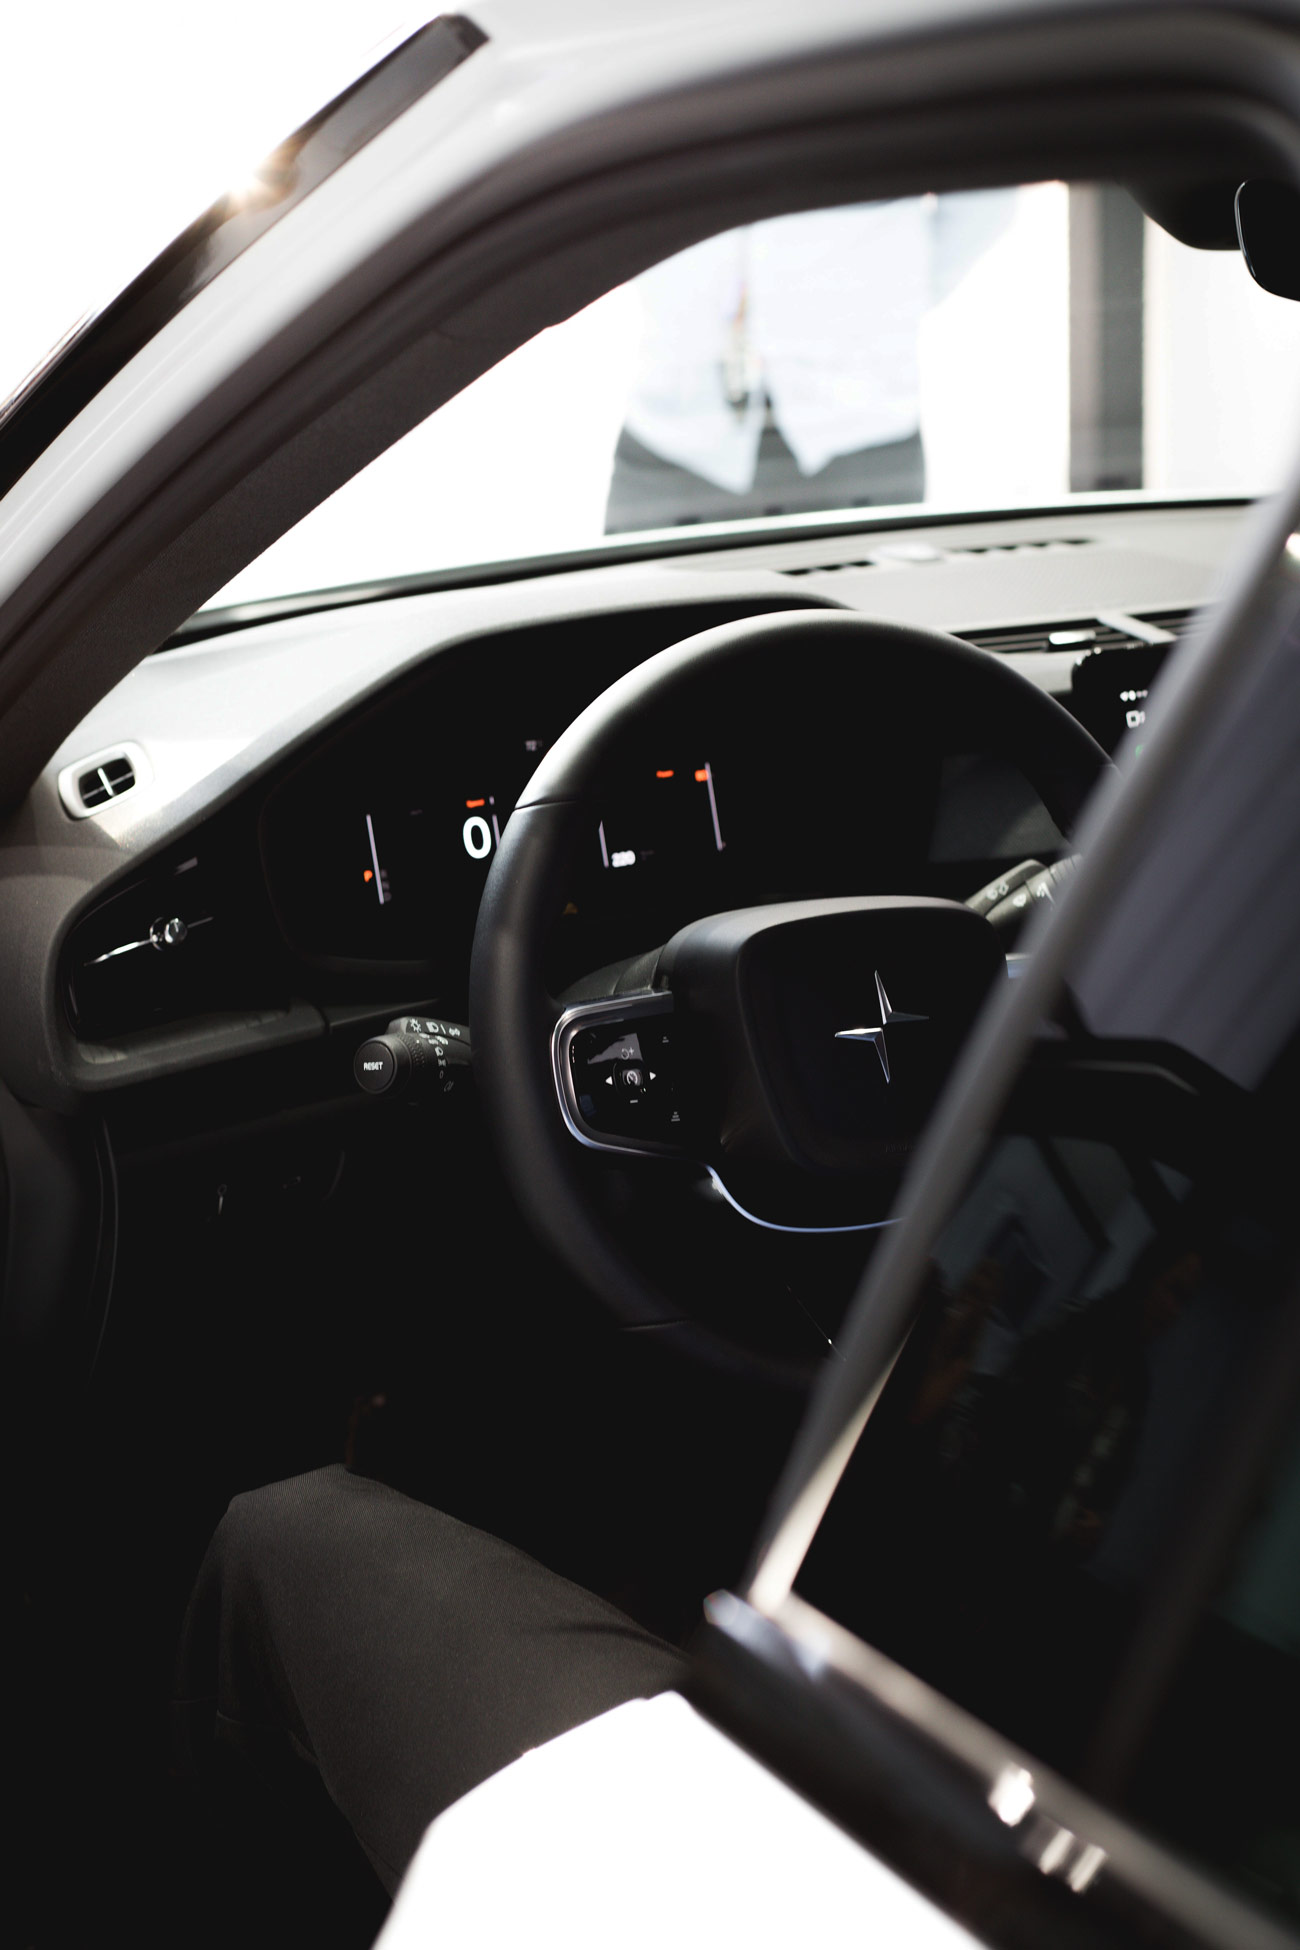 Interior view of clean car in black and white